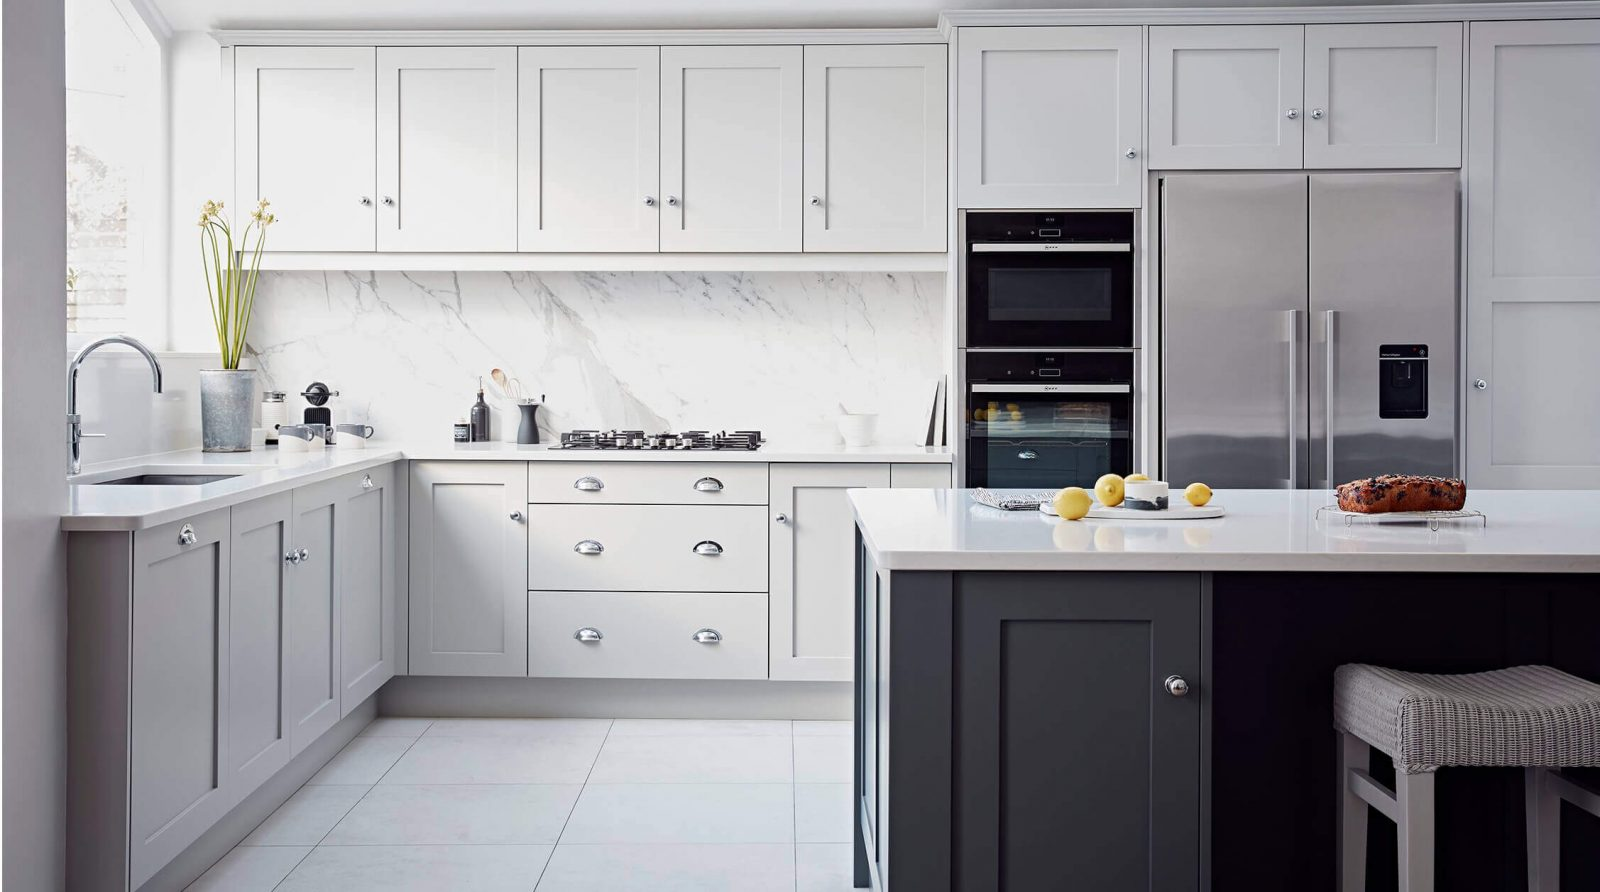 Choosing The Right Size Tiles For A Small Kitchen Kitchen Wall Tiles Cape Town Tilespace Cape Town Tilespace